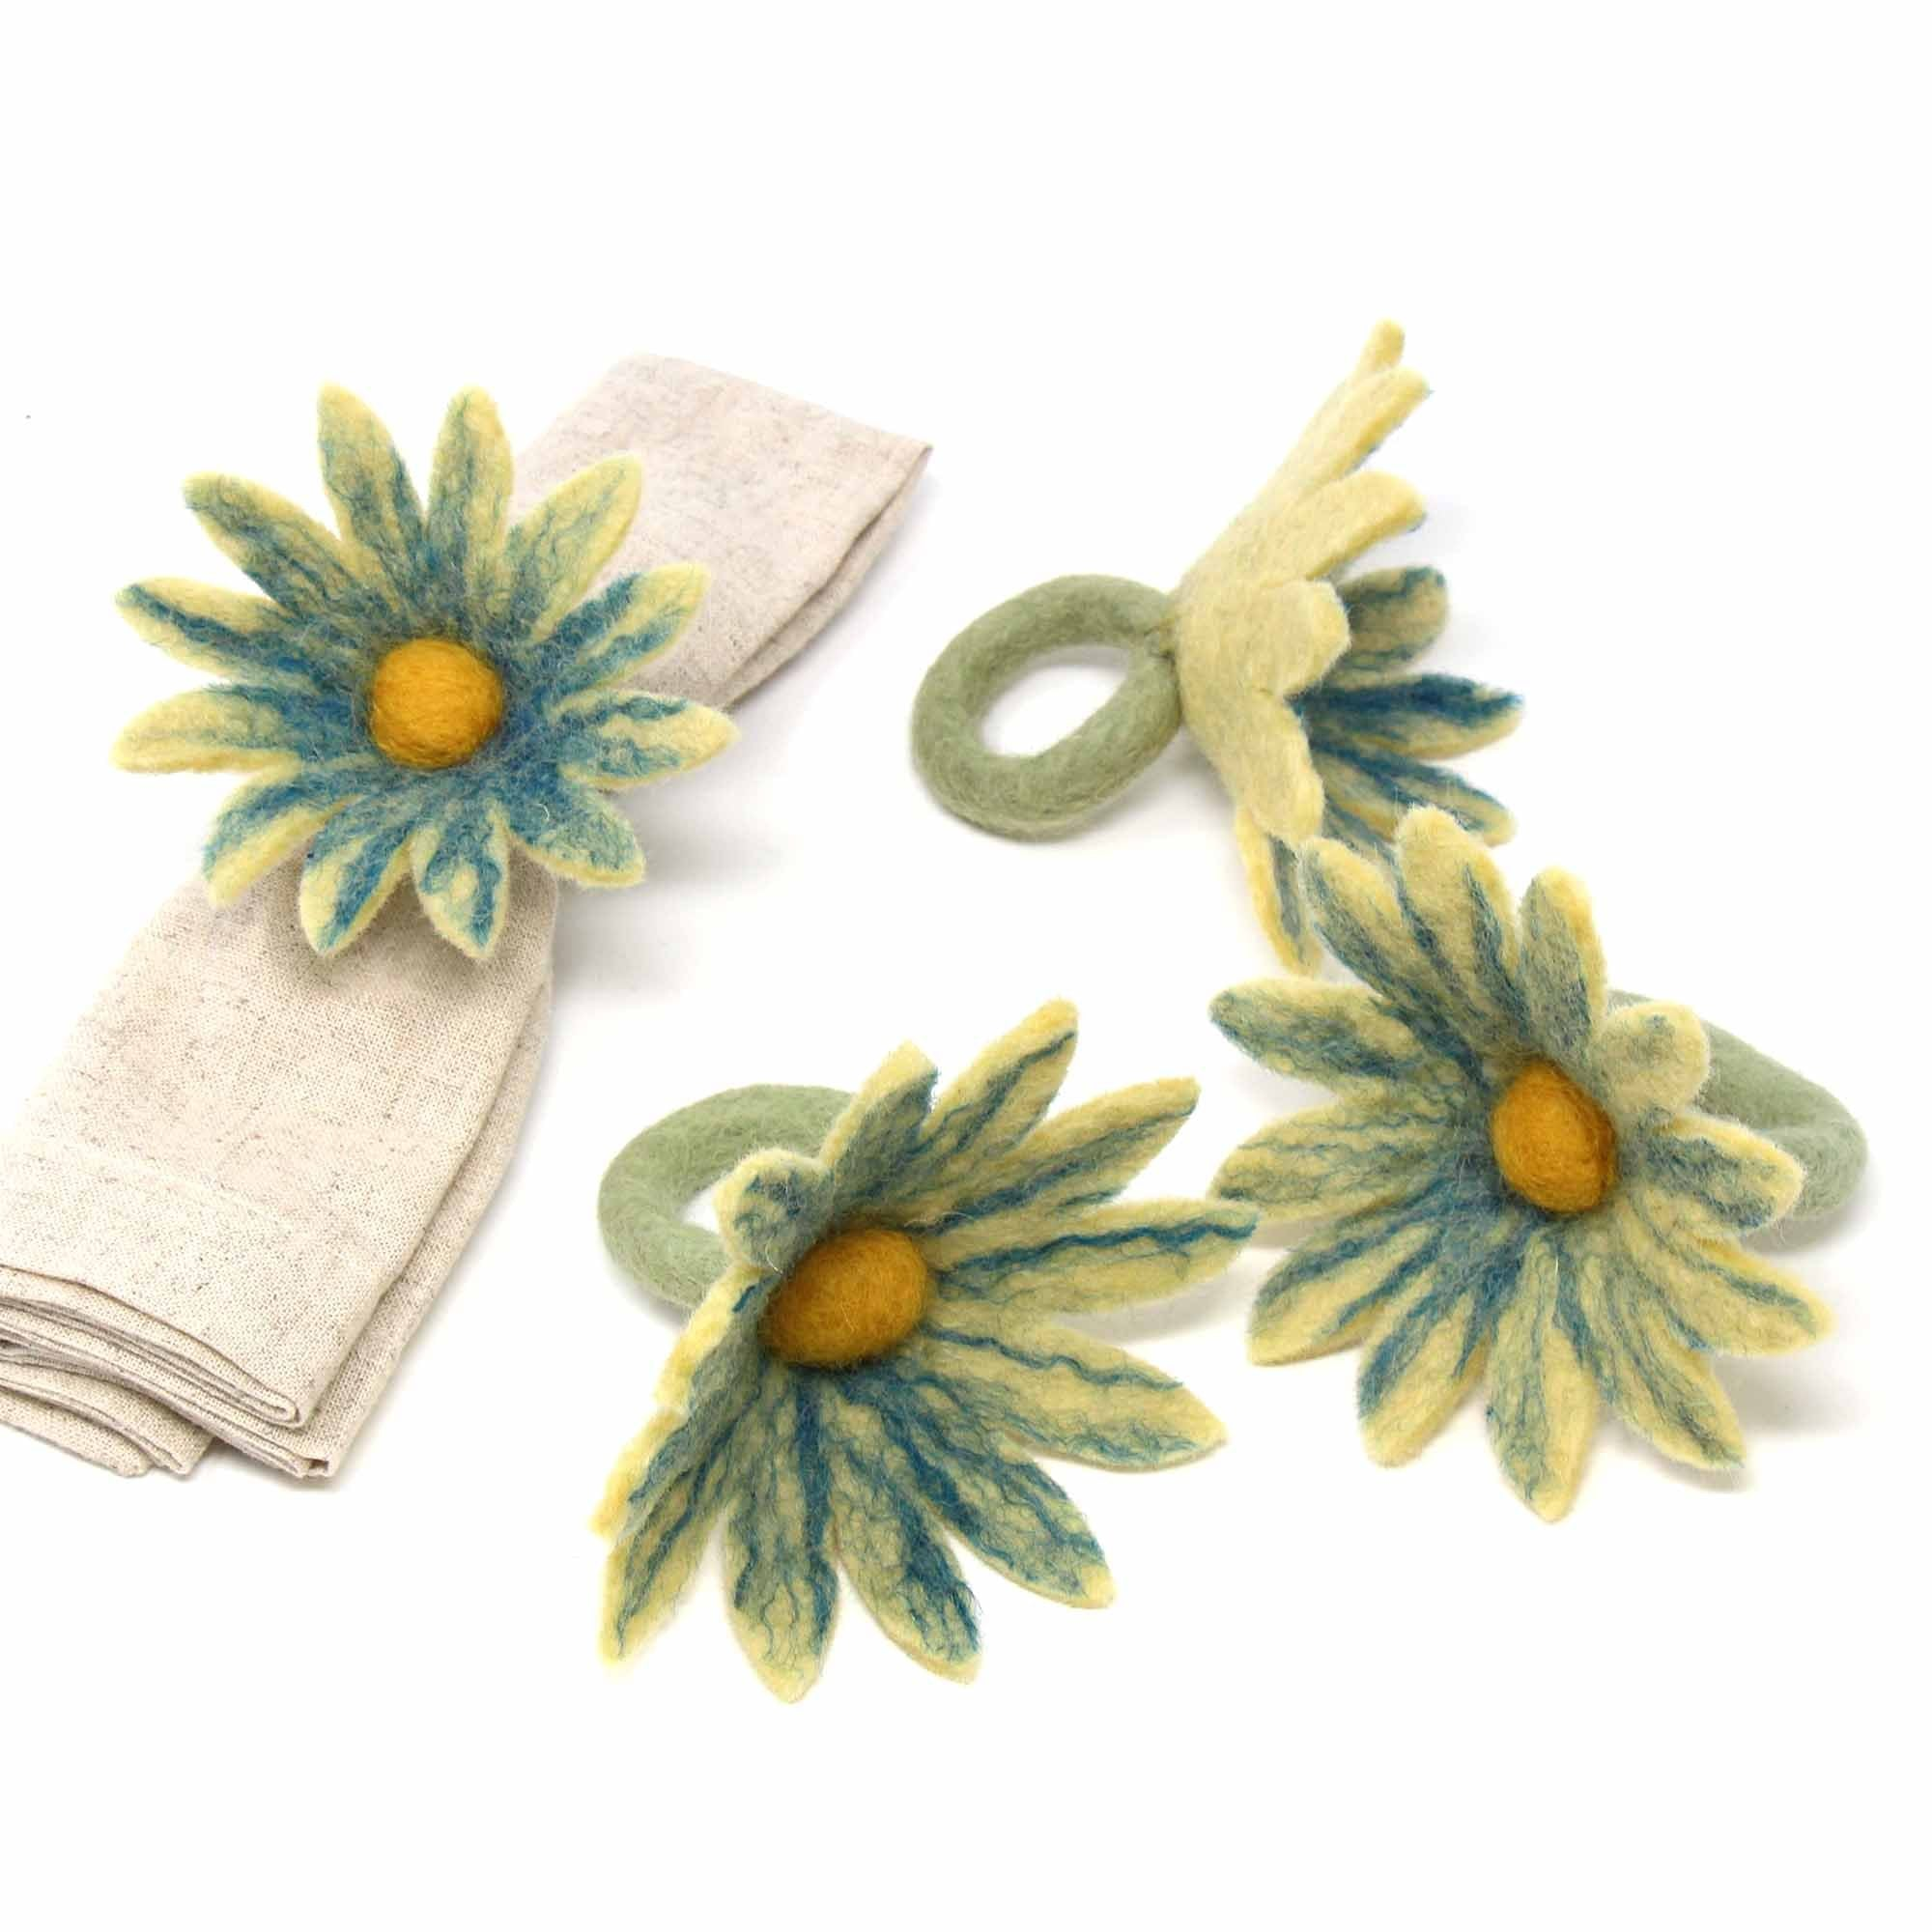 Daisy Napkin Rings ● Set of Four Midnight ● Global Groove Tableware Global Groove - Mandala Sol